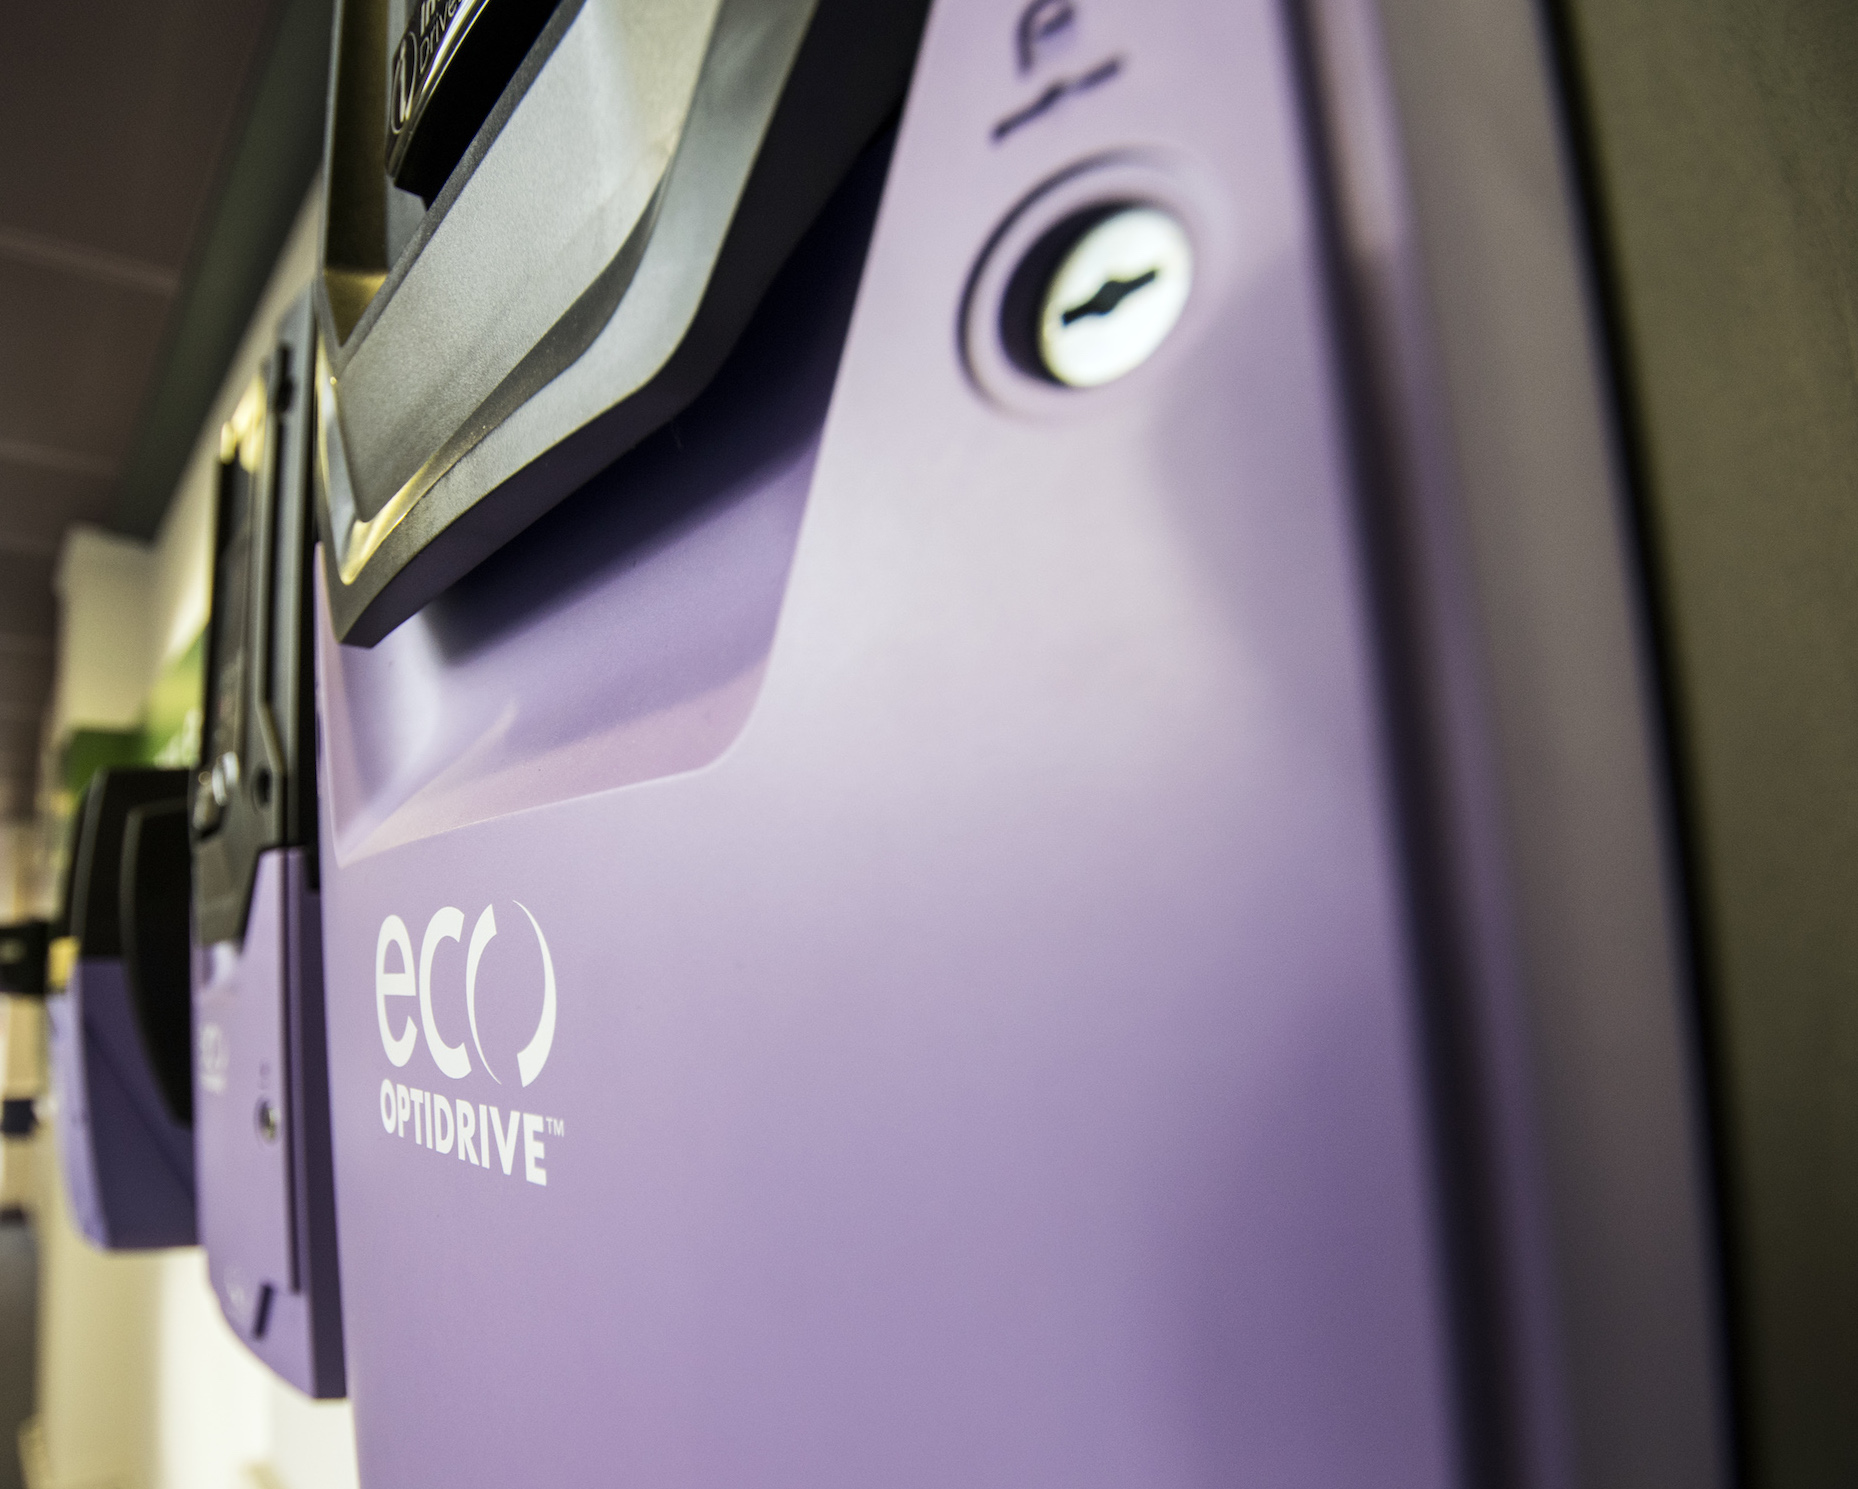 Optidrive Eco boosts leading pump distributor